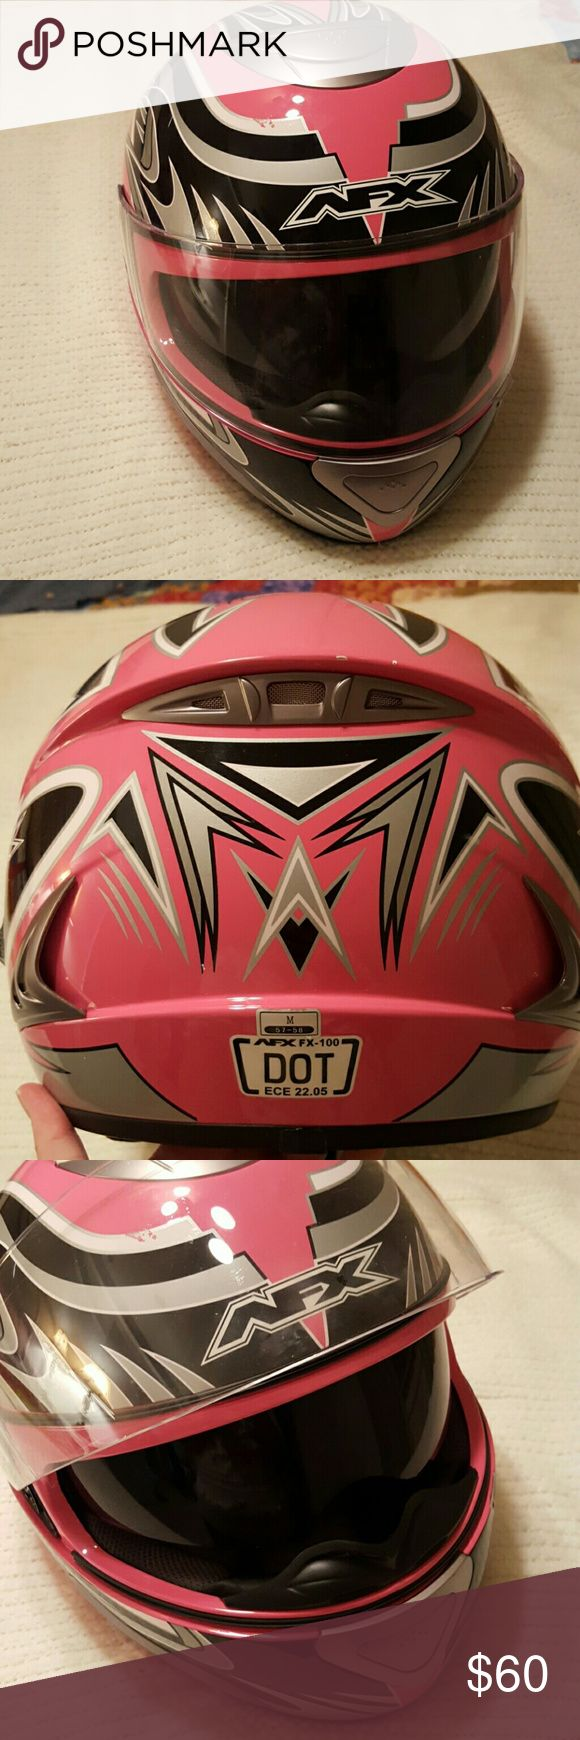 AFX DOT motorcycle helmet with duel visor. Pink, silver, black graphic DOT AFX motorcycle helmet.  It does have some scratches in the graphics, mostly from being stored. There is one minor scratch on the visor and some wear on the cushion where it has set in storage.  Feel free to make me an offer. I can take additional pictures if anyone is interested. AFX Other